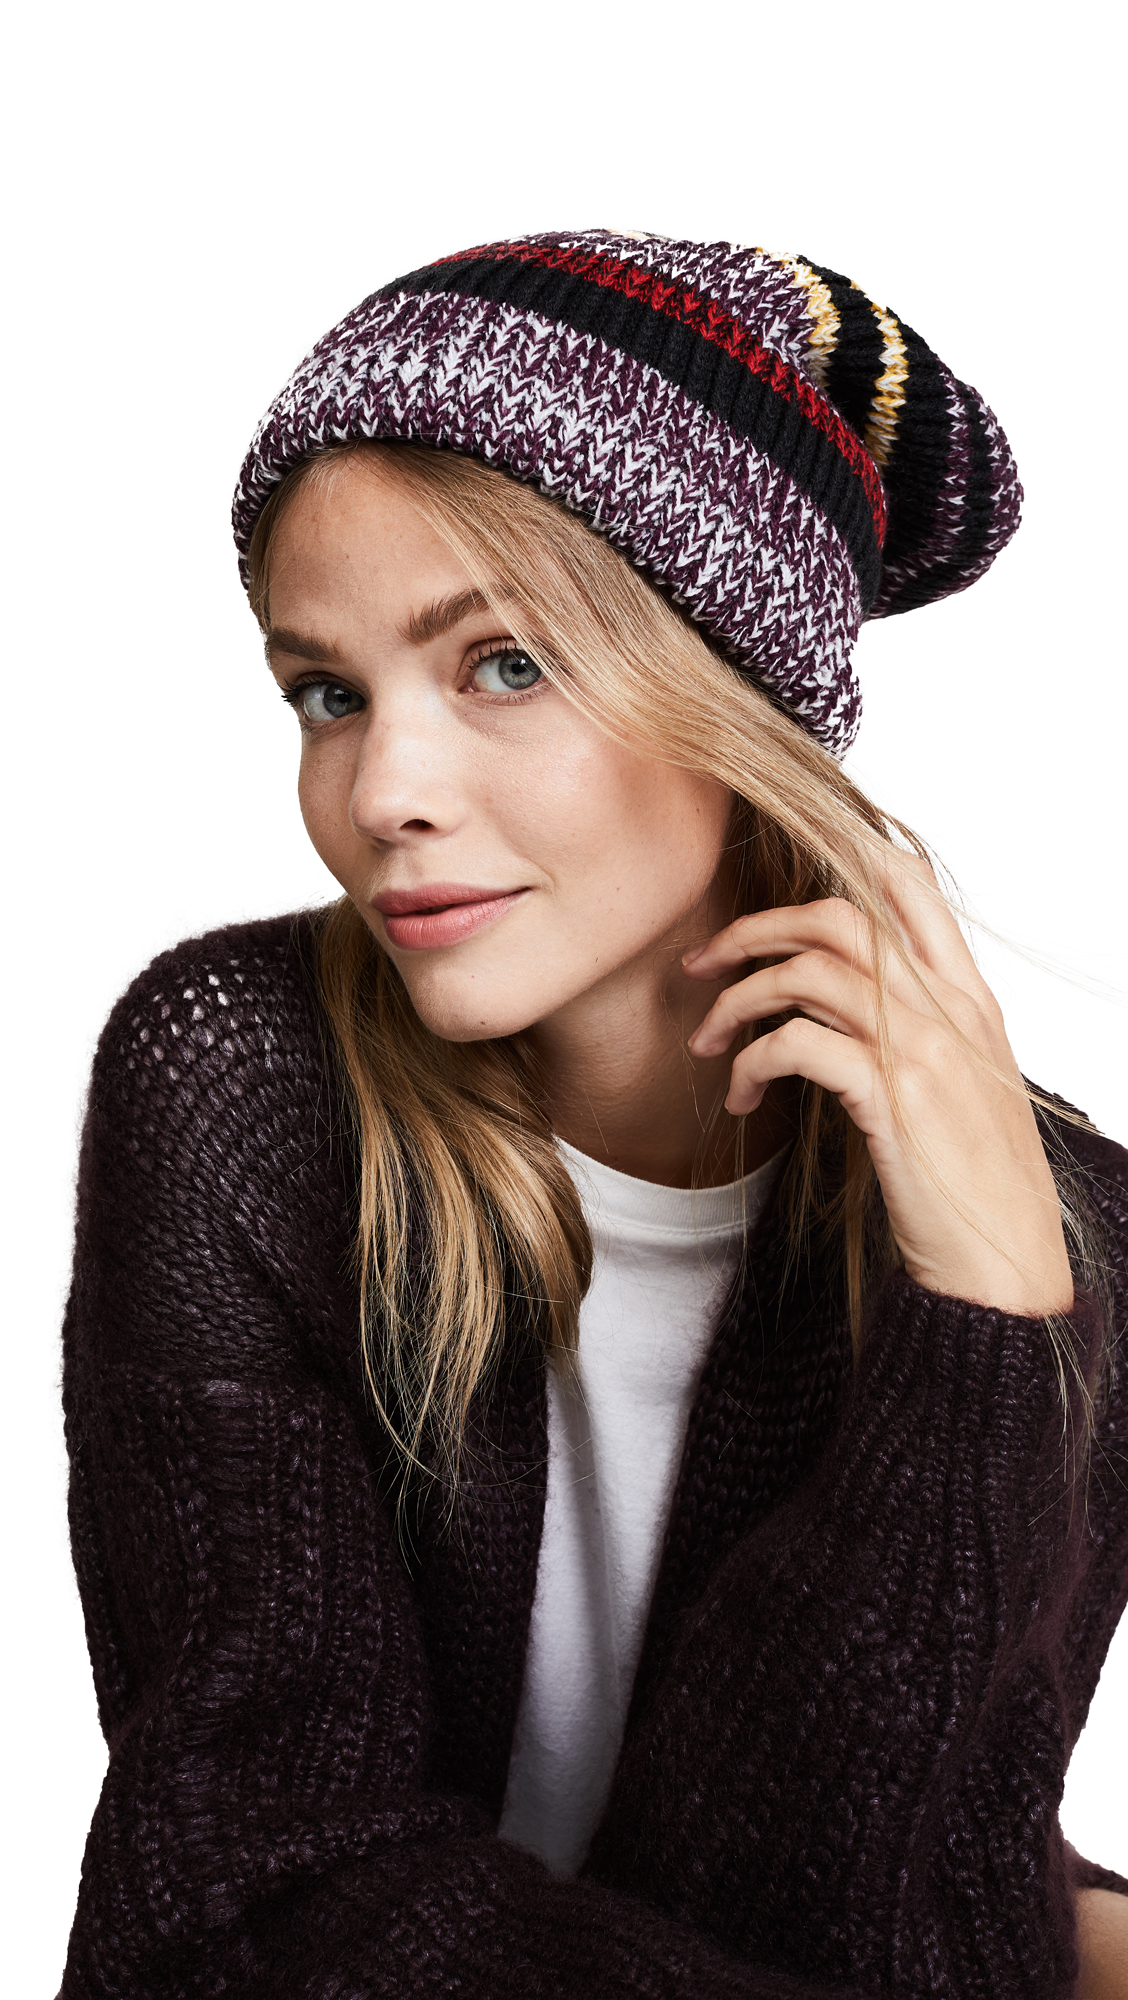 Free People All Day Everyday Slouchy Beanie - Red